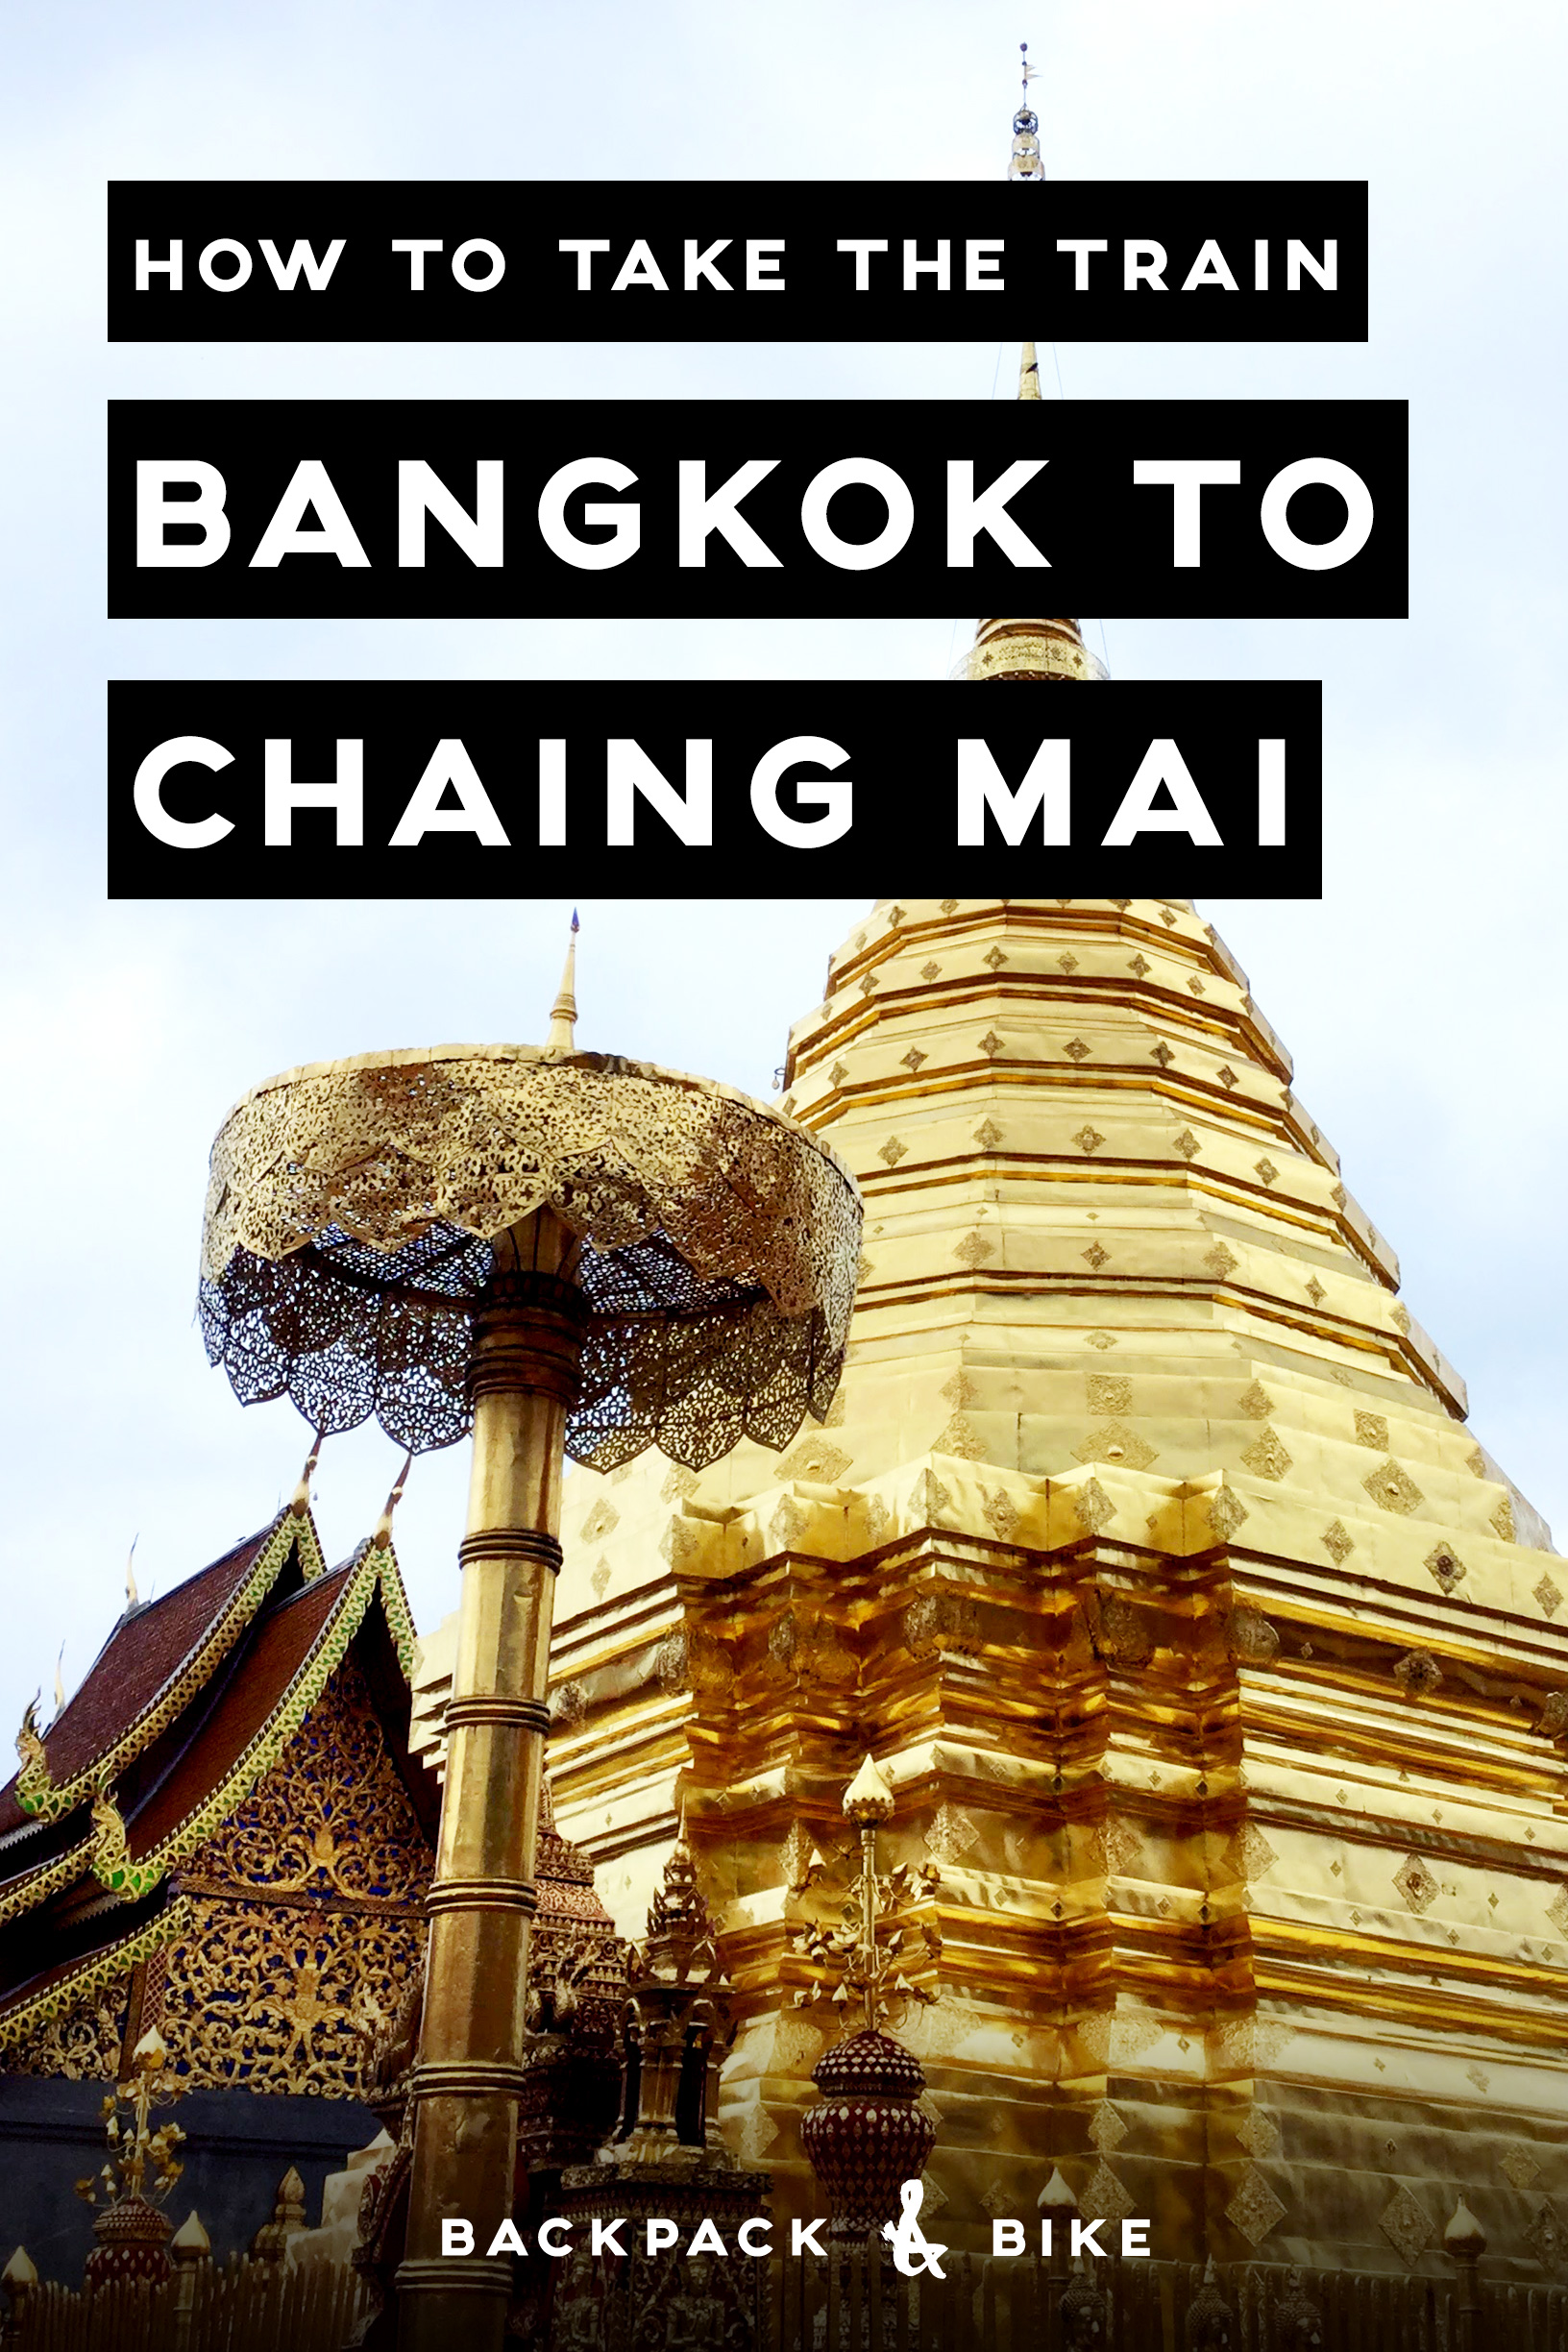 How to take the train Bangkok to Chiang Mai   If you're visiting Thailand, chances are you'll arrive in Bangkok. But you want to get to Chiang Mai? No worries, it's easy. Pin for reference!